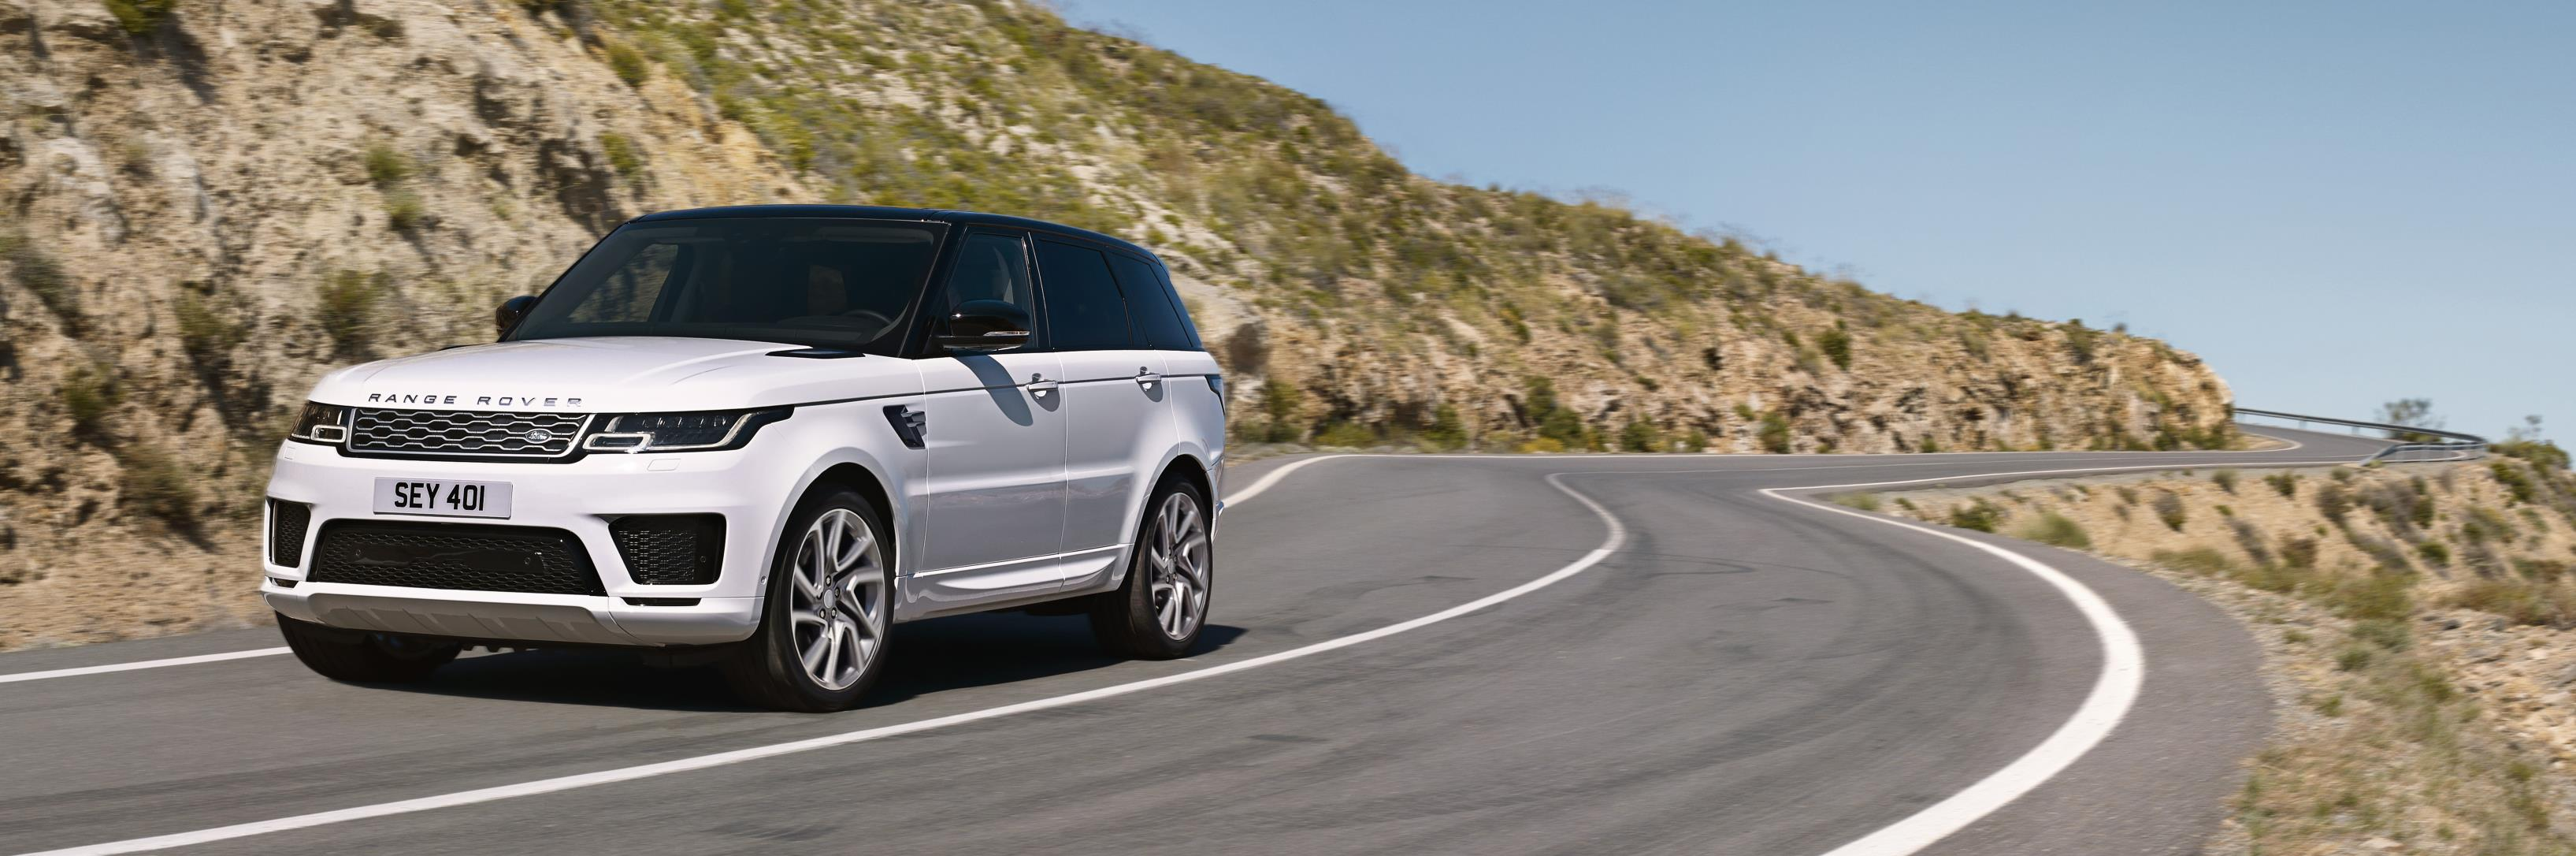 Range Rover Sport P400e PHEV Arrives In Early 2018 — 31 Mile NEDC